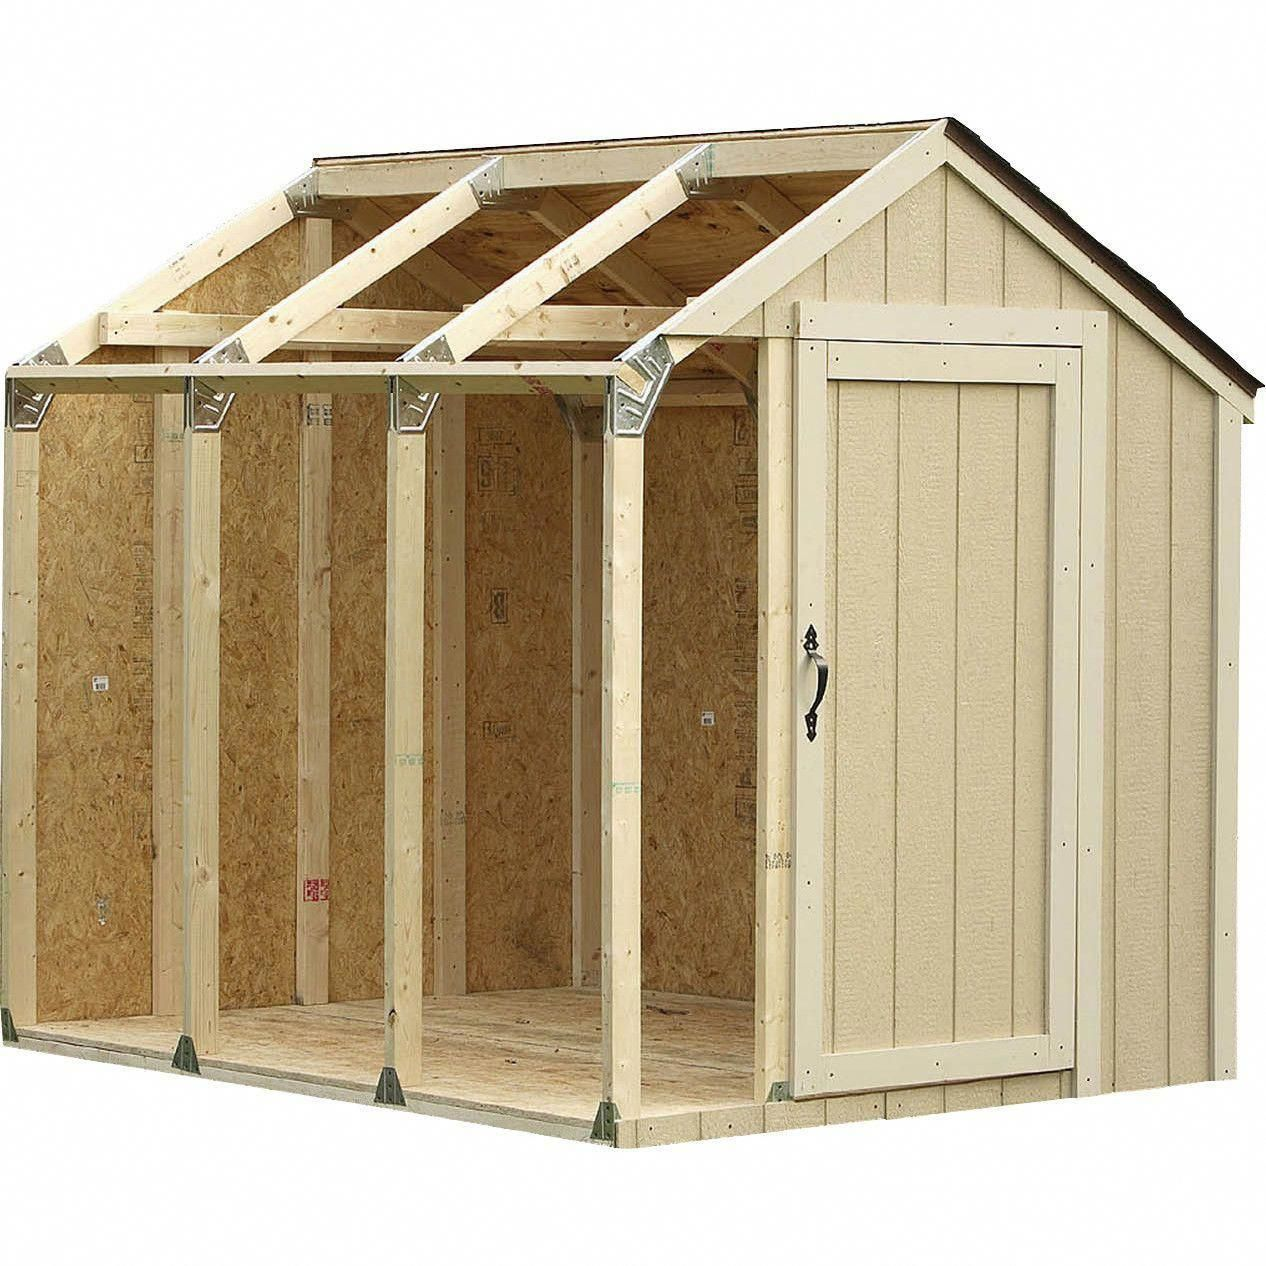 Shed Kit Brackets In 2019 Chickens Diy Shed Plans Diy